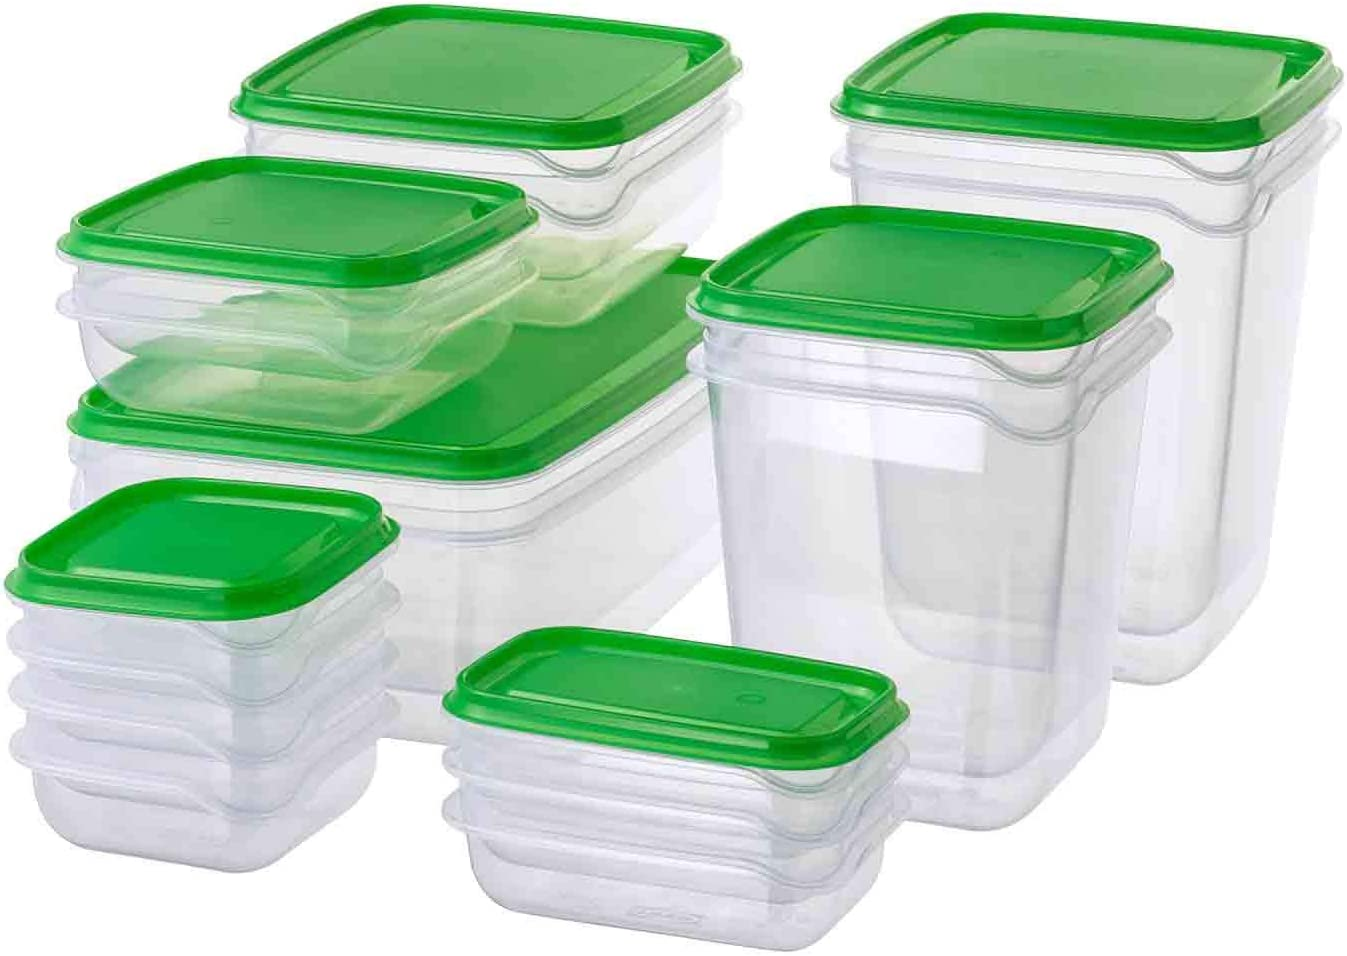 IKEA PRUTA BPA FREE FOOD CONTAINER, SET OF 17, MICROWAVE,FREEZER,DISHWASHER-SAFE ;from#bestshop201314